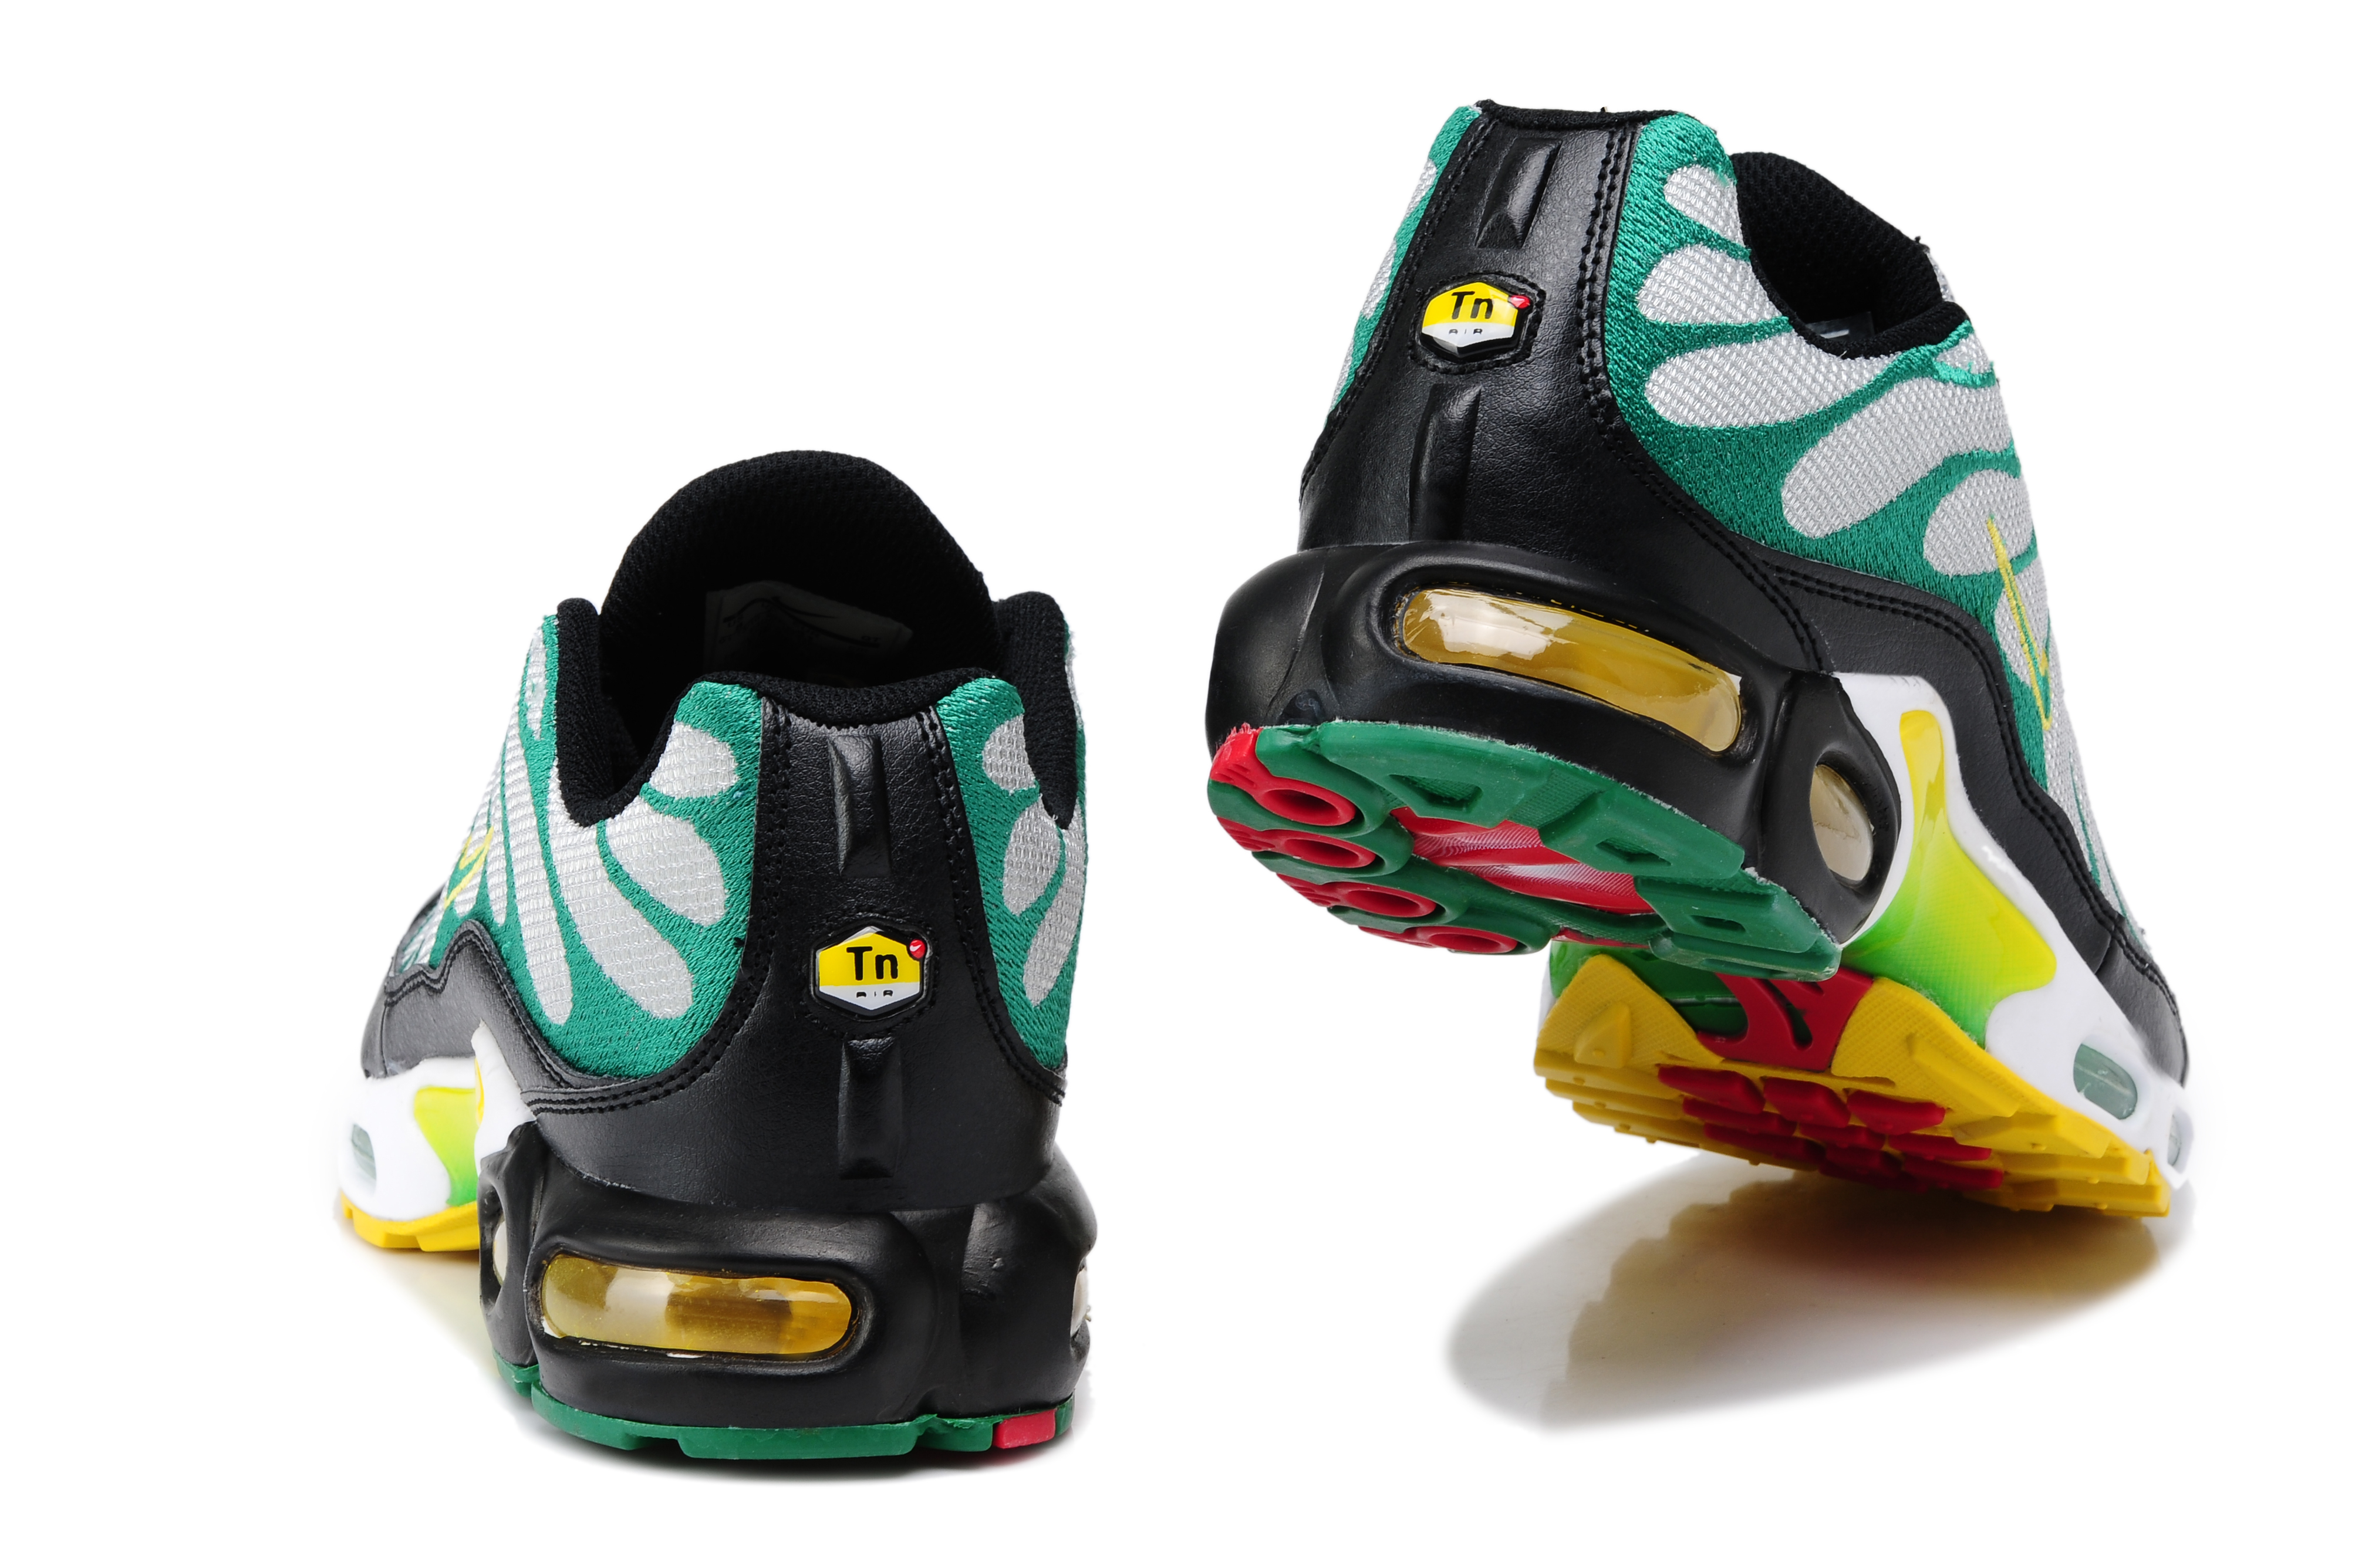 basket nike tn homme pas cher,achat vente chaussures